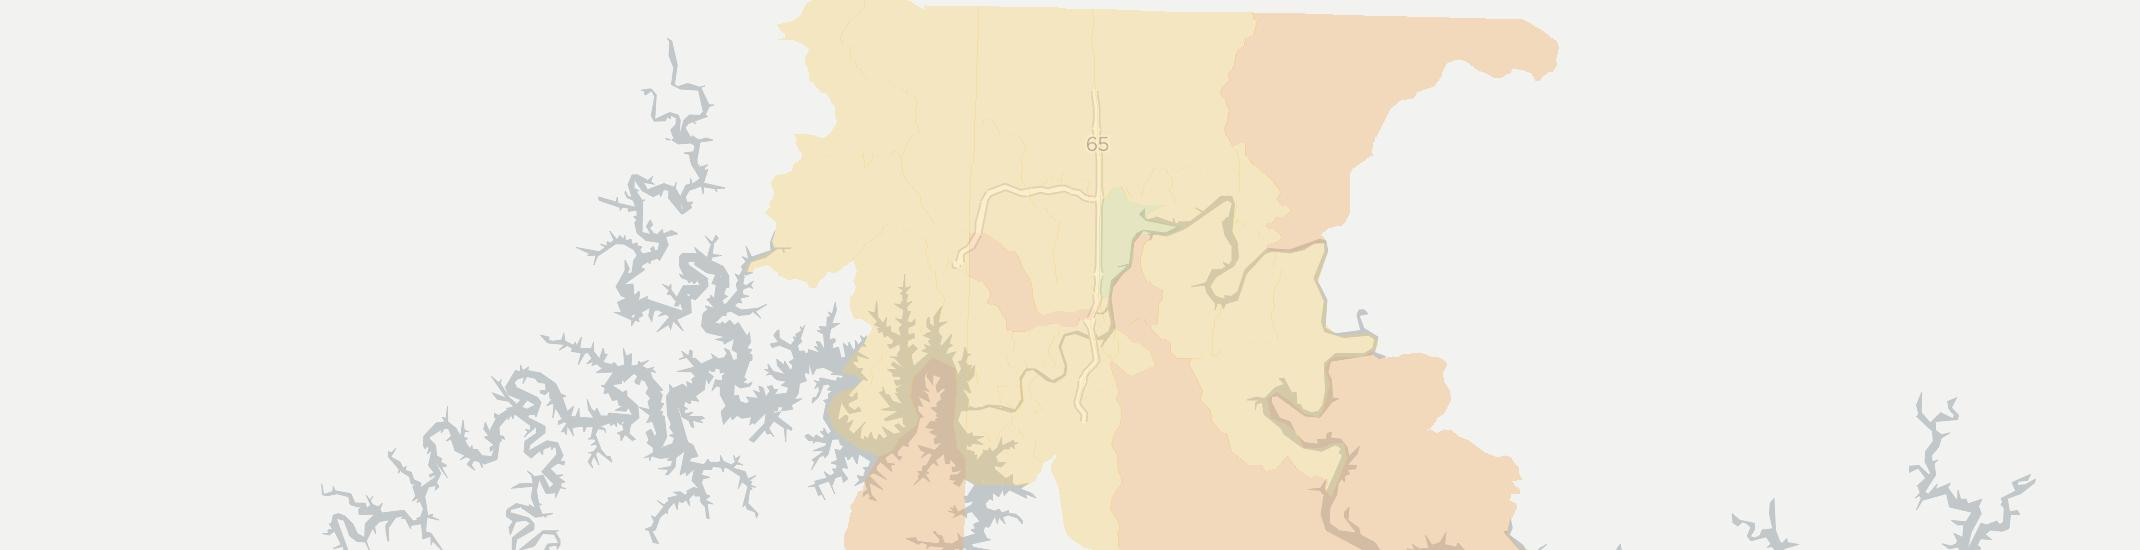 Branson Internet Competition Map. Click for interactive map.